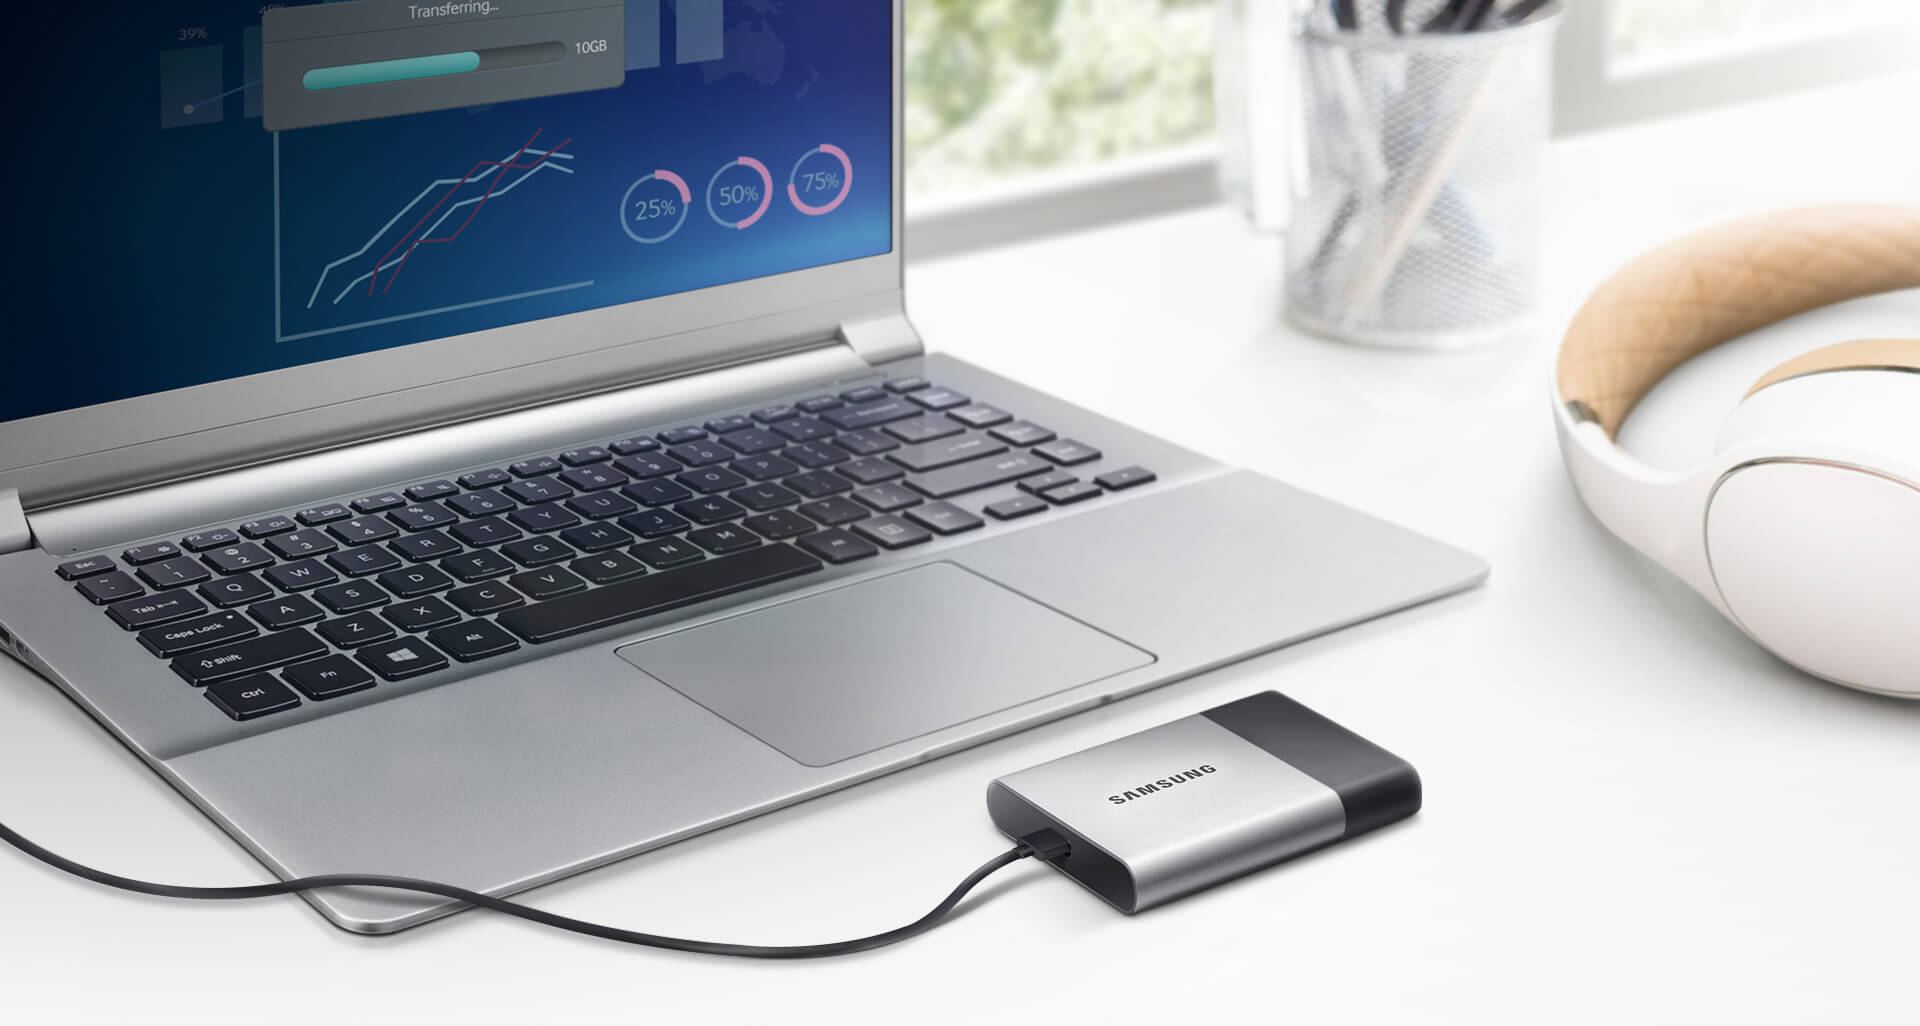 Samsung Portable SSD T3 plugged in